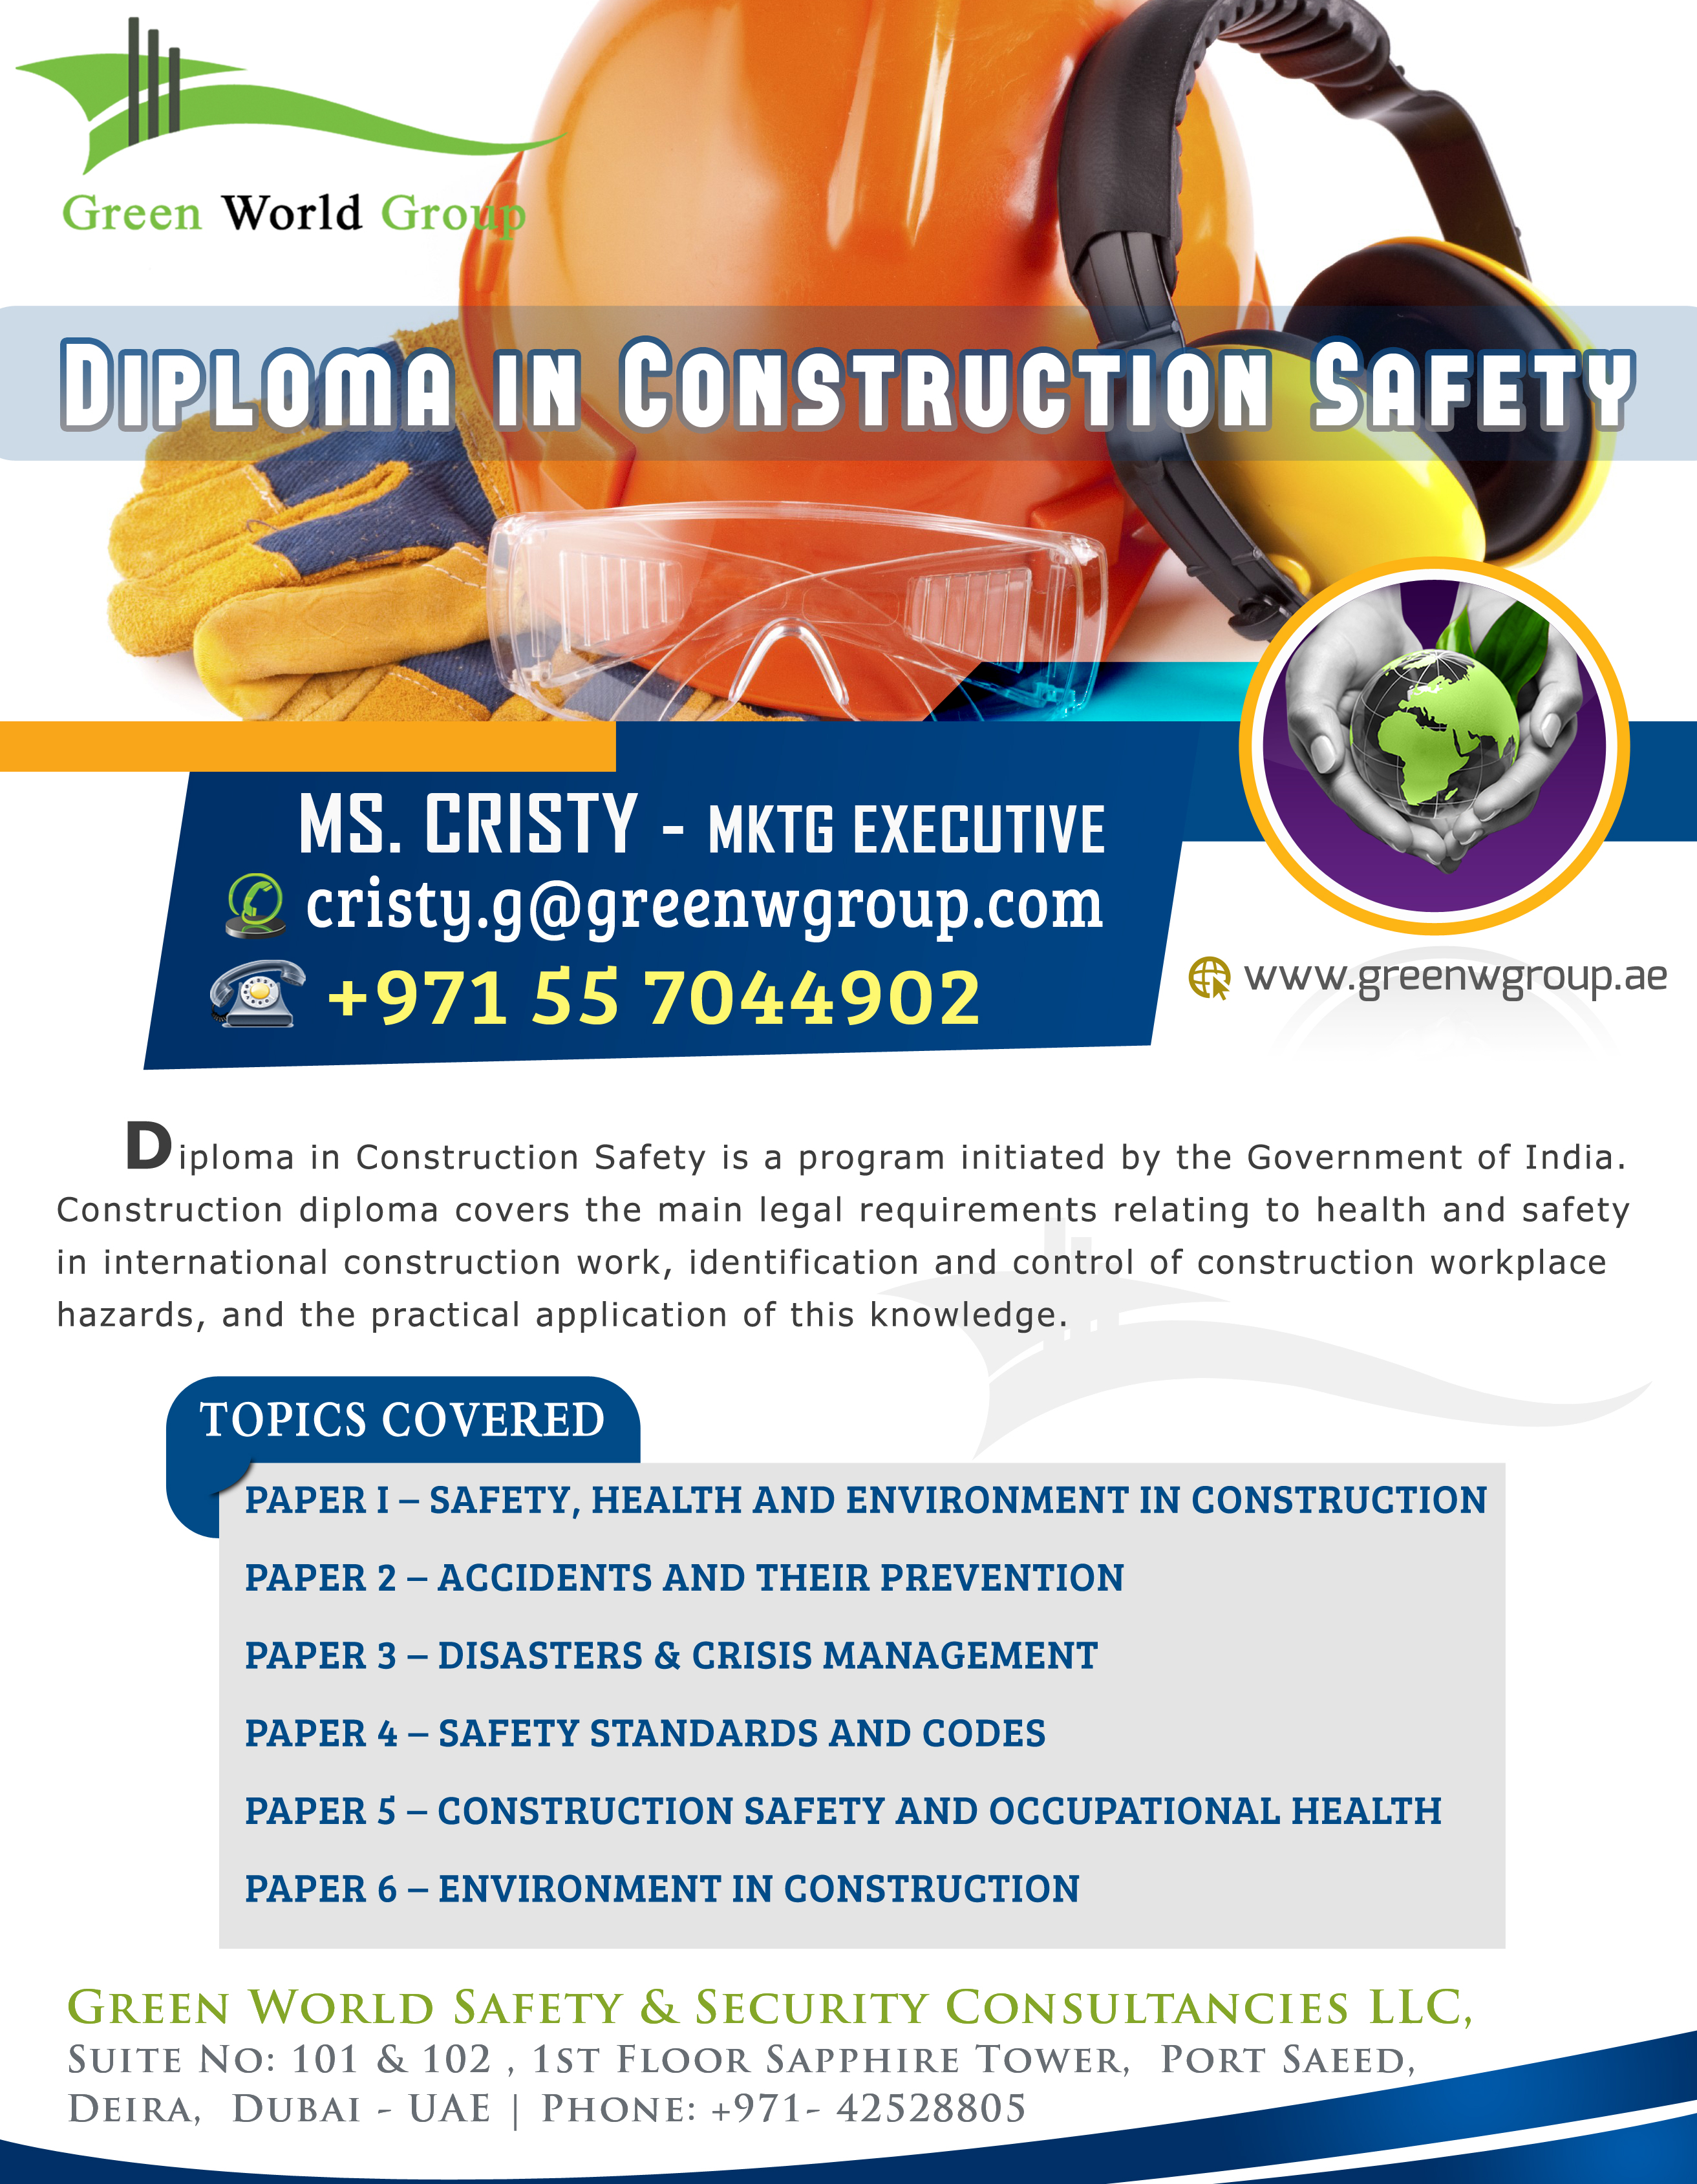 Diploma-in-Construction-Safety_Dubai